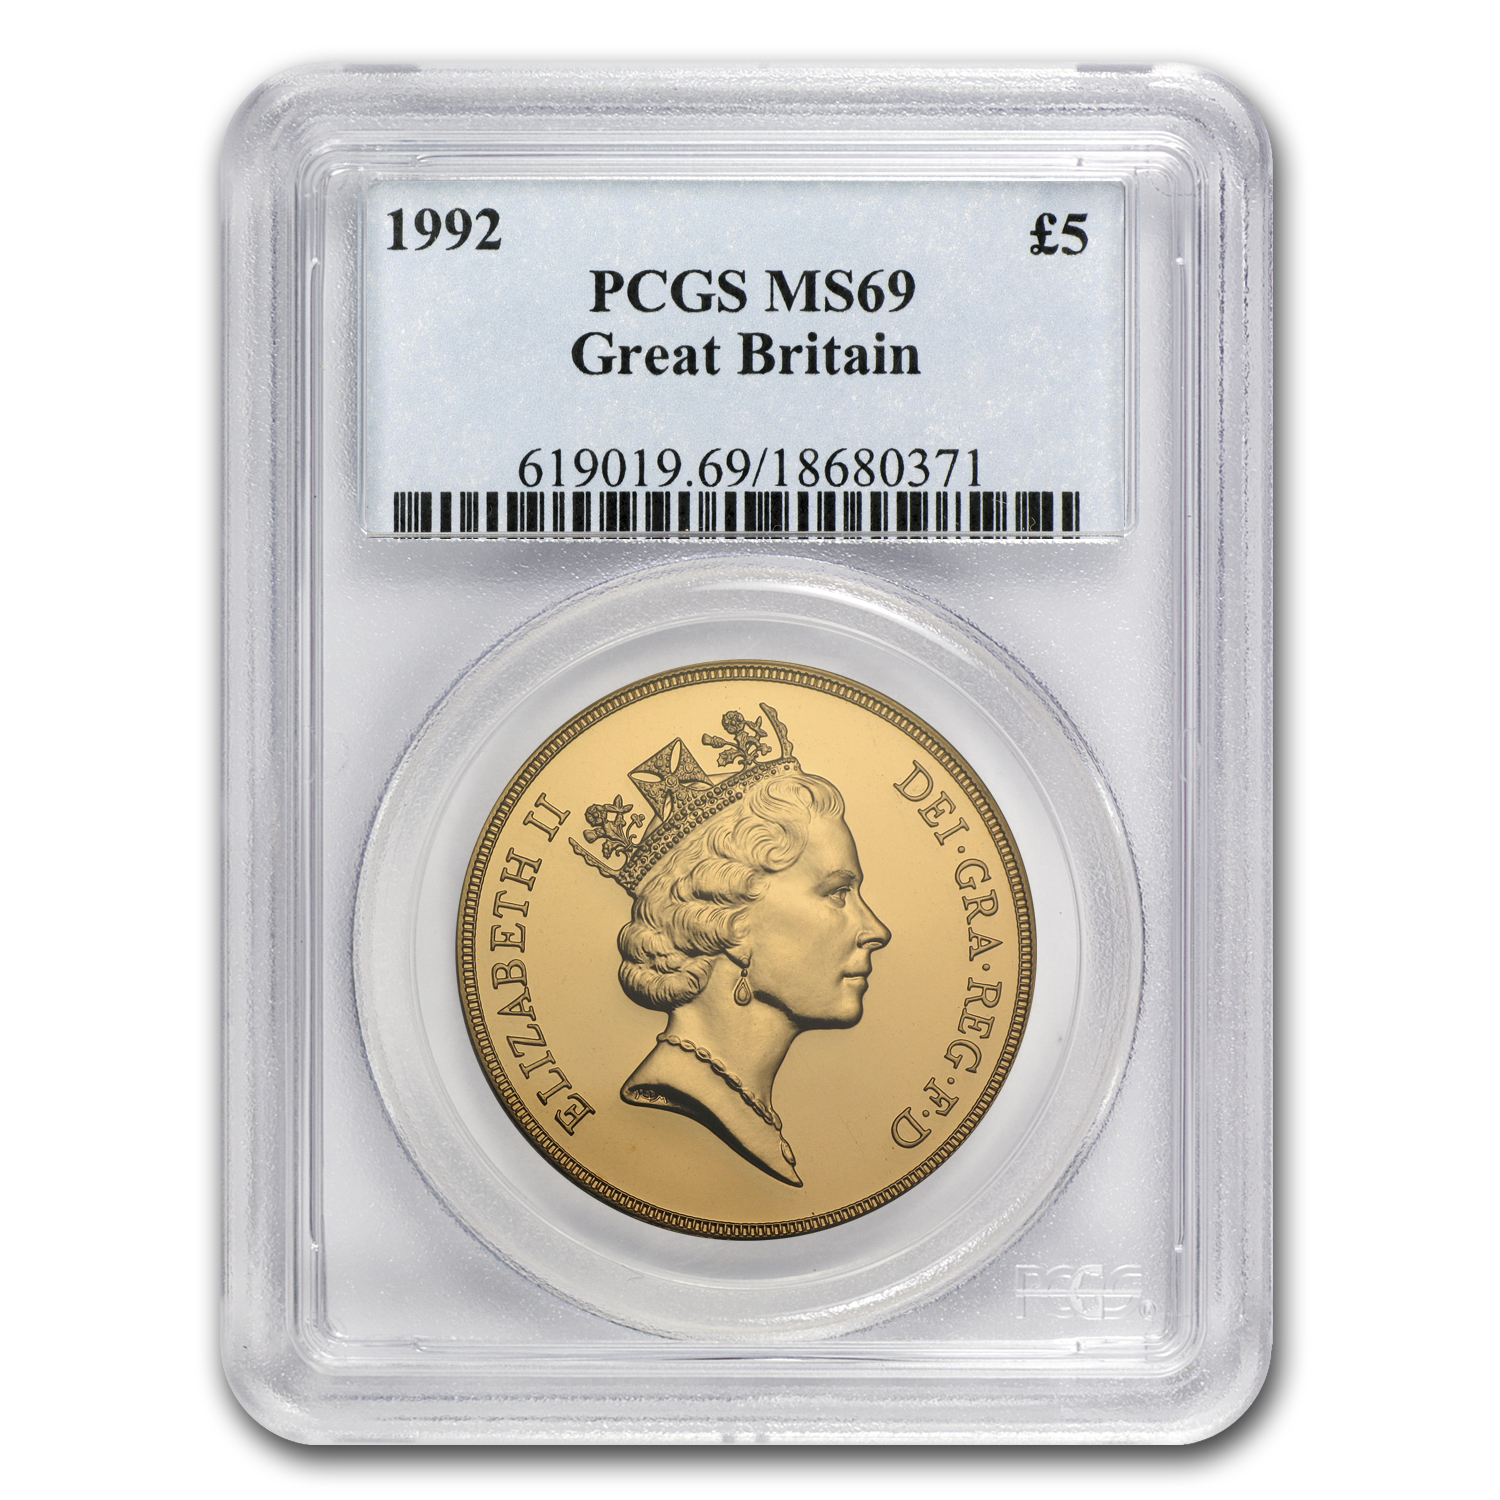 Great Britain 1992 Gold £5 MS-69 PCGS